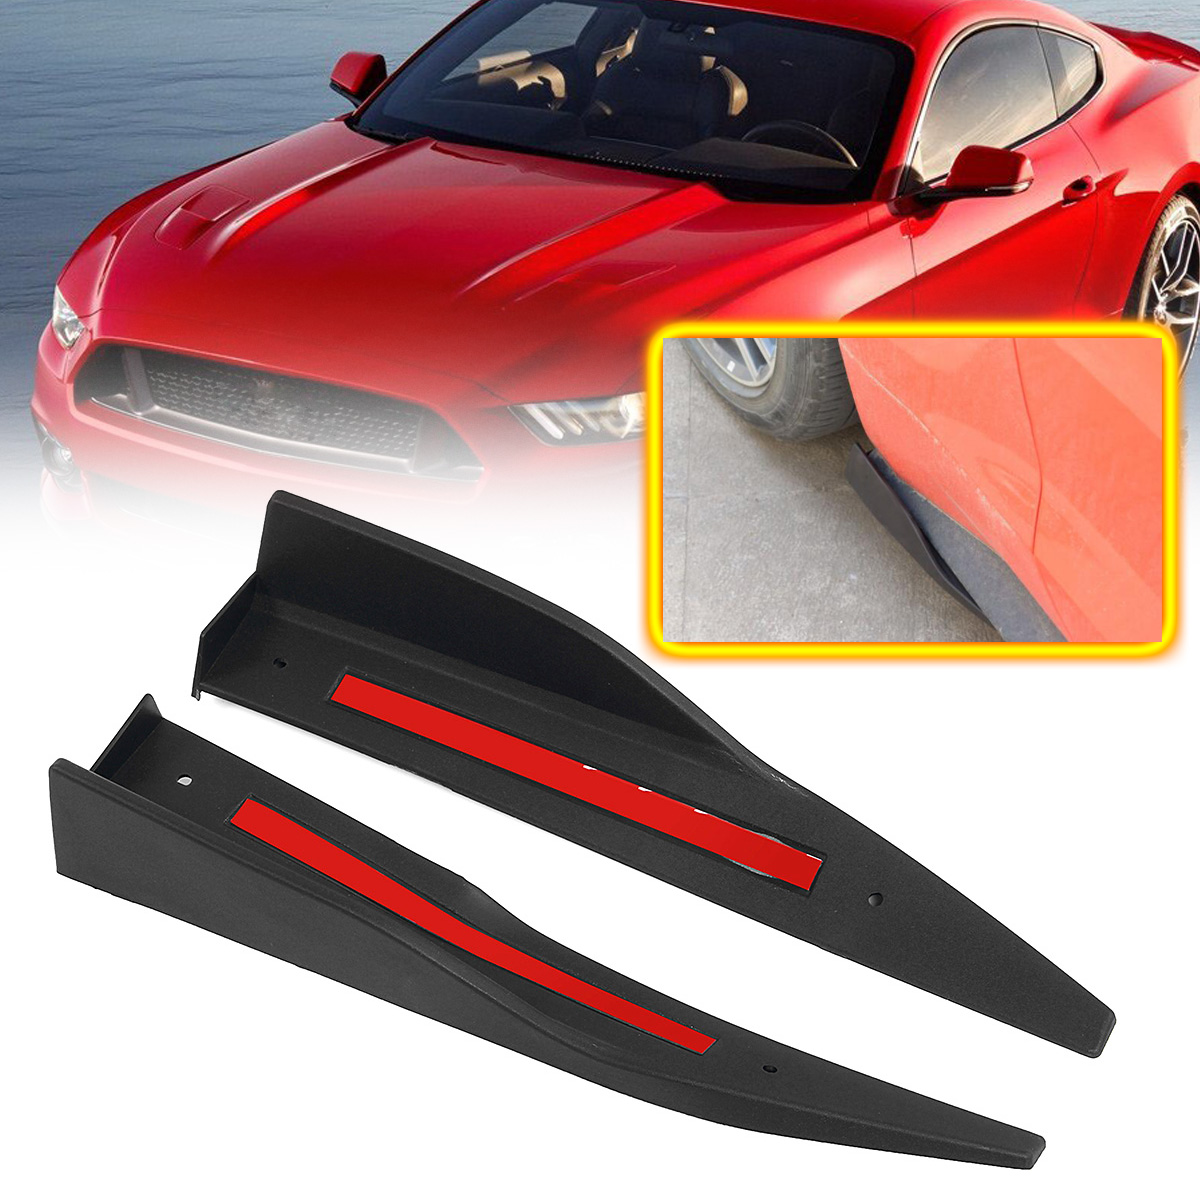 Rear Lower Bumper Diffuser For 2015-2017 Ford Mustang GT350 Valance Body Kit